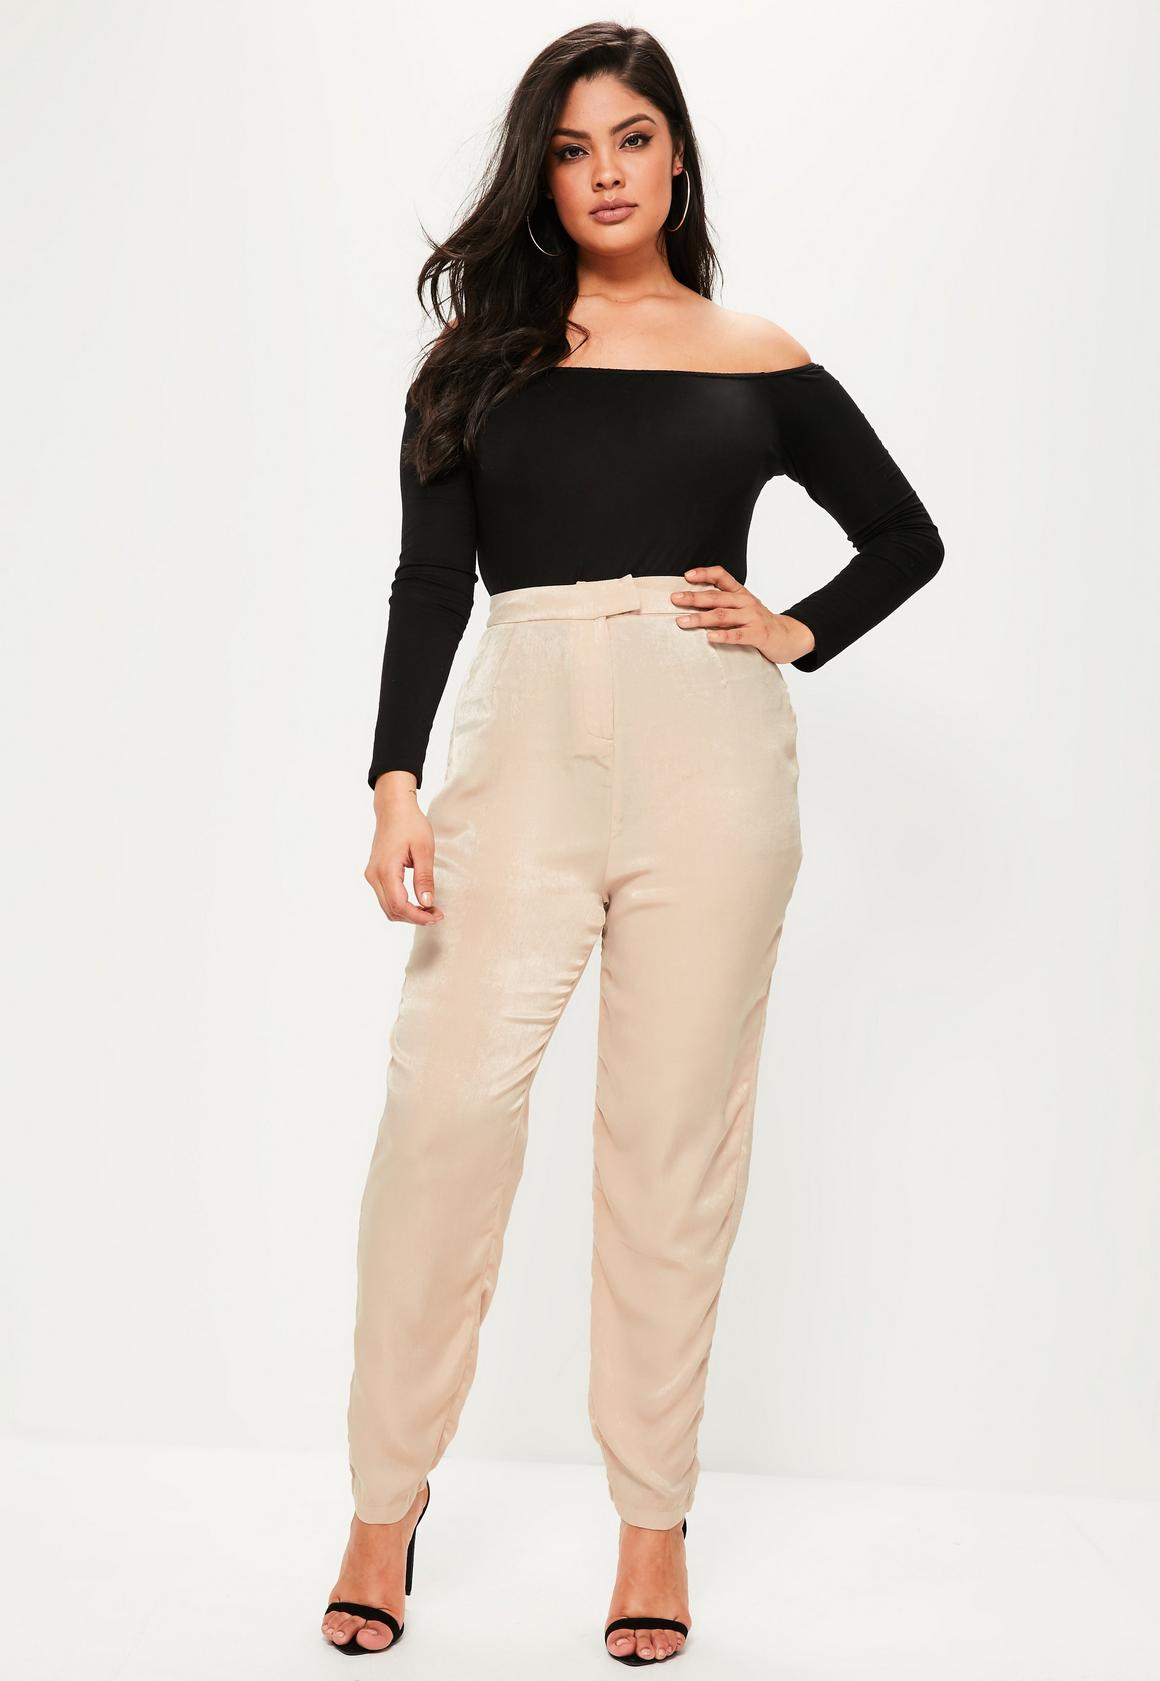 Plus Size Nude High Waisted Pants - Plus Size Nude High Waisted Pants Missguided